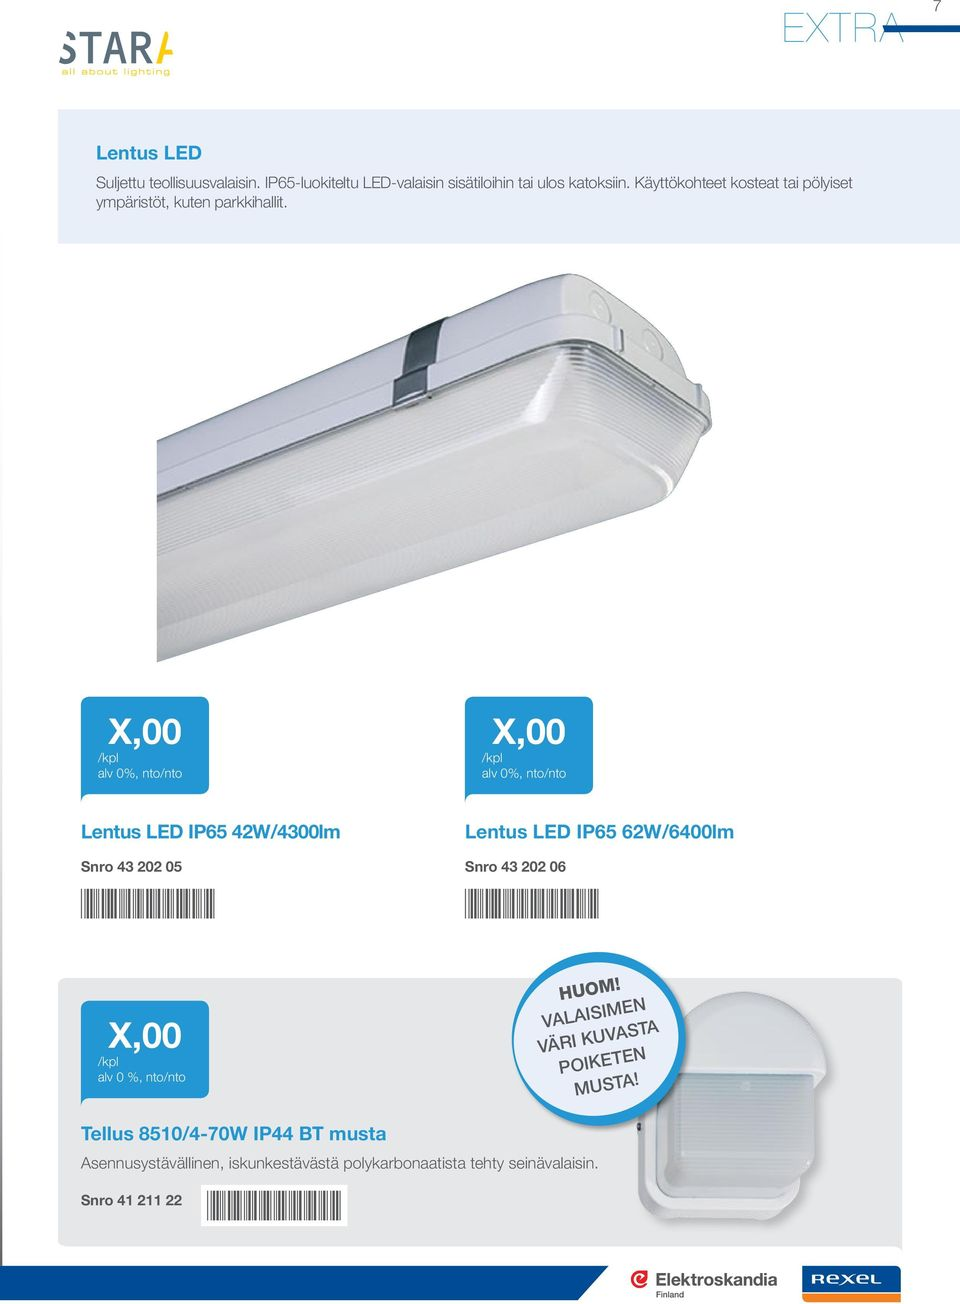 Lentus LED IP65 42W/4300lm Snro 43 202 05 *4320205* Lentus LED IP65 62W/6400lm Snro 43 202 06 *4320206* alv 0 %,